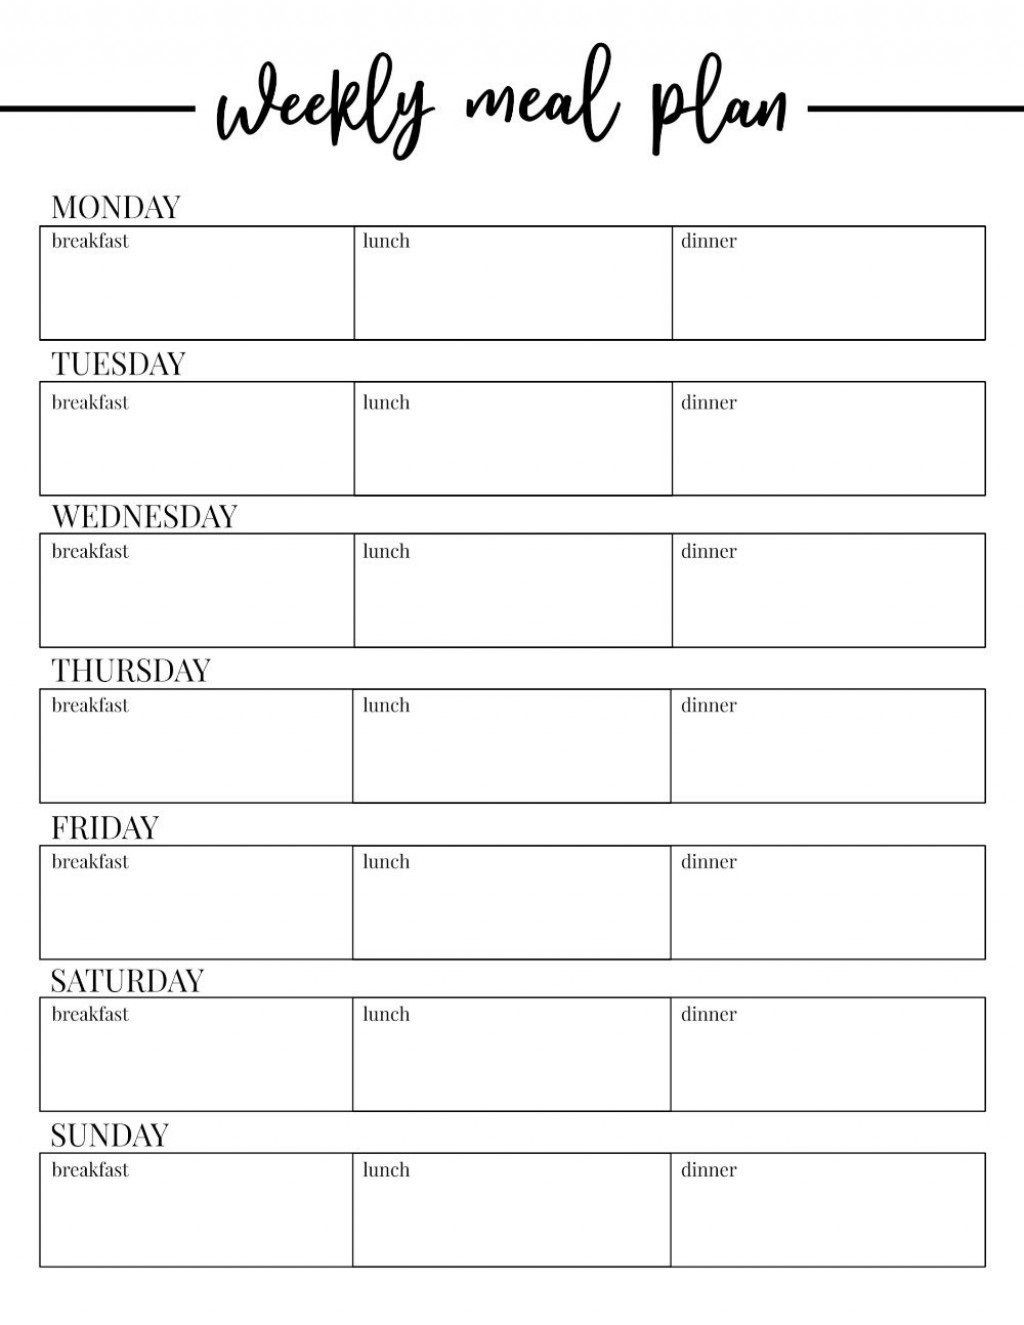 005 Unusual Excel Weekly Meal Planner Template Image  With Grocery List DownloadableLarge